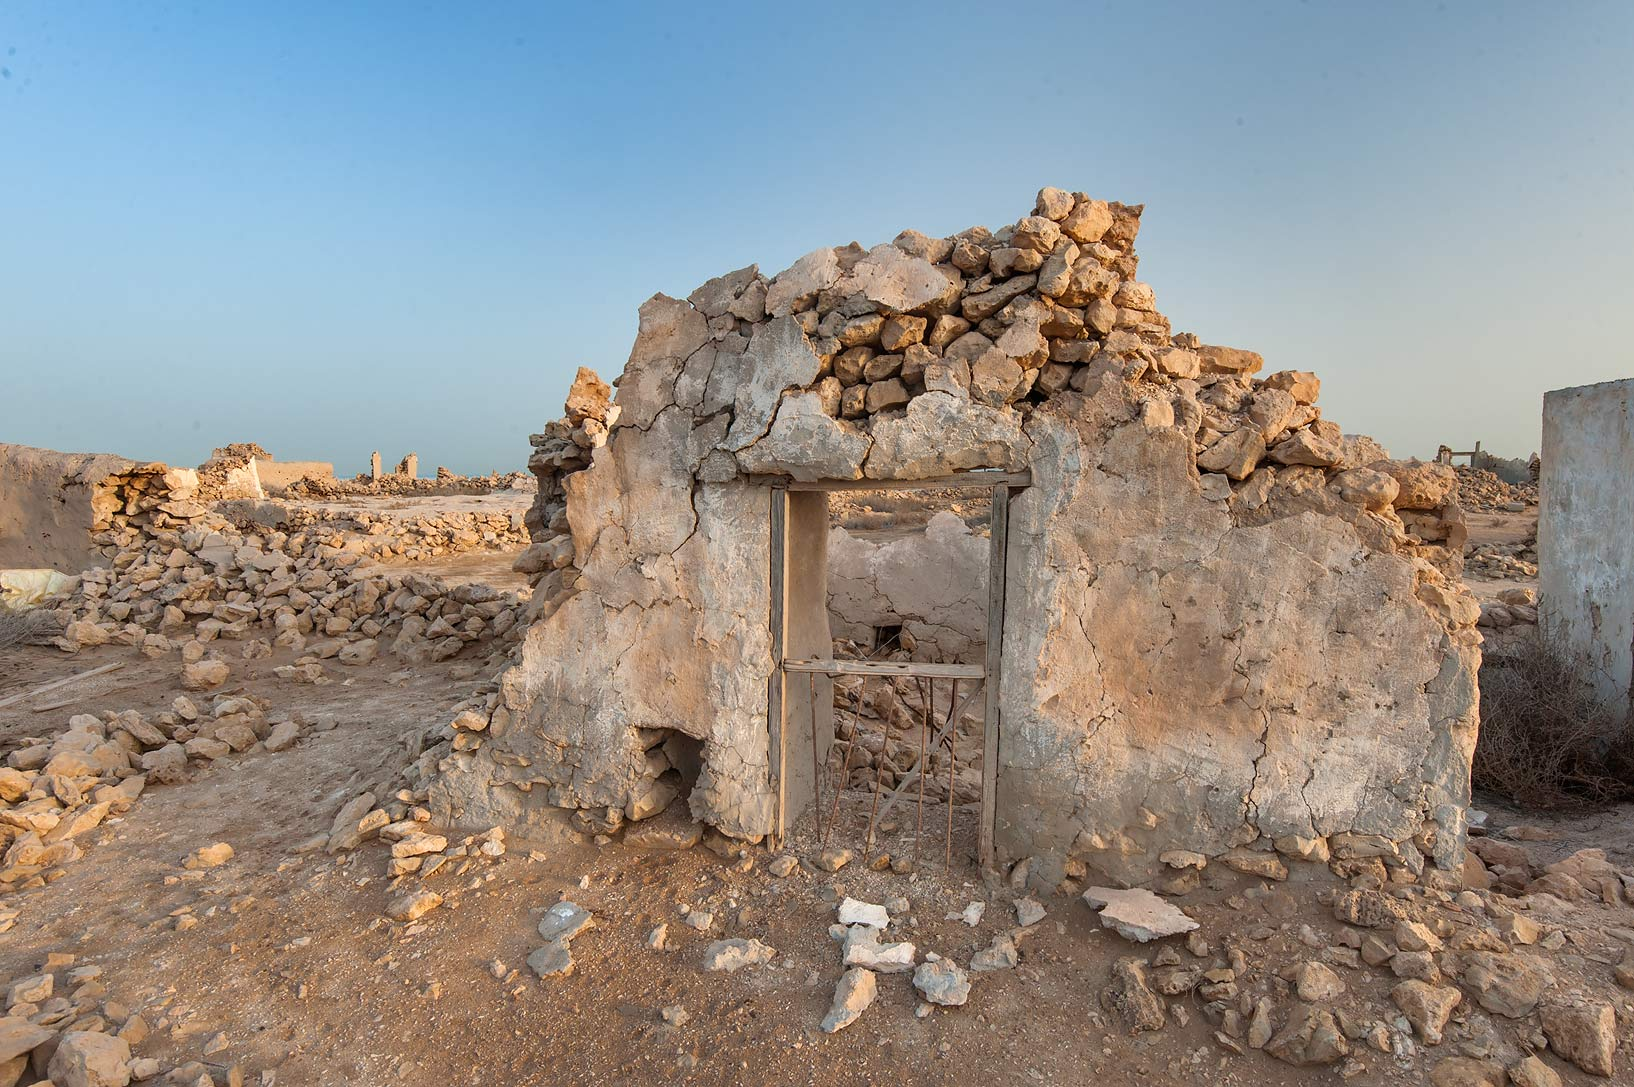 Window in a stone wall in a fishing village of Al...Jumayl) west of Ruwais. Northern Qatar